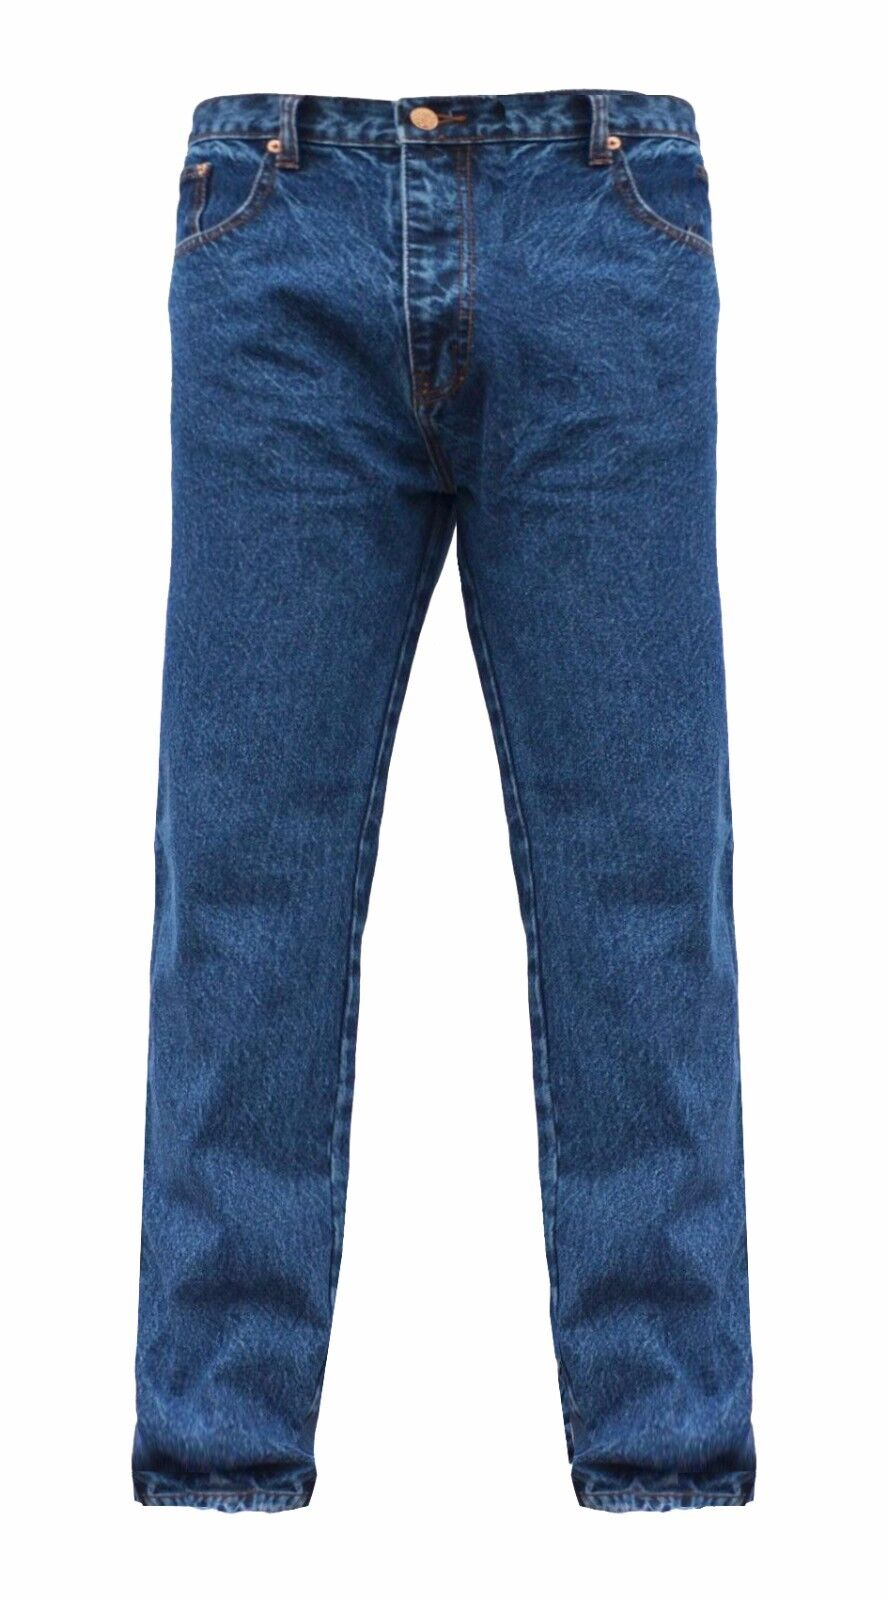 100% COTTON MENS WEARING EURO DENIM BASIC REGULAR STRAIGHT CLASSIC FIT JEANS